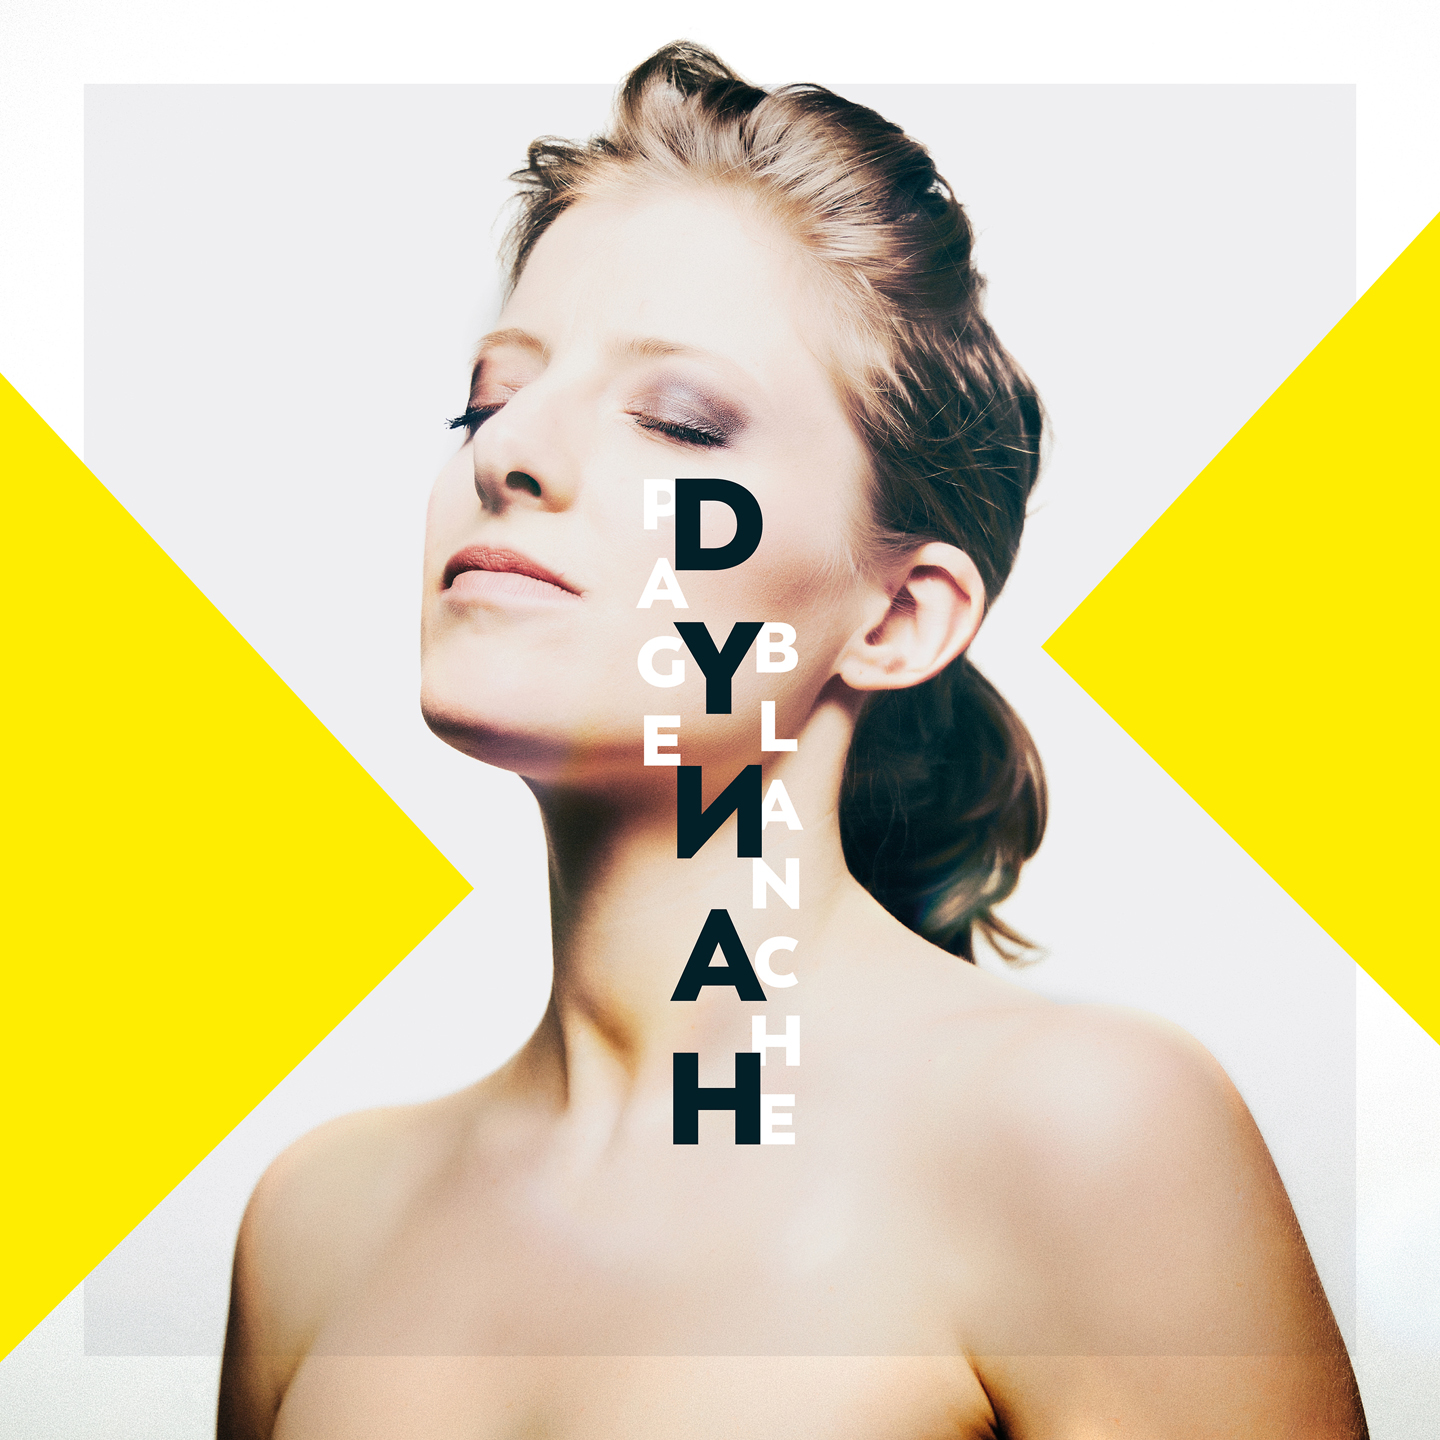 Dynah - Page Blanche